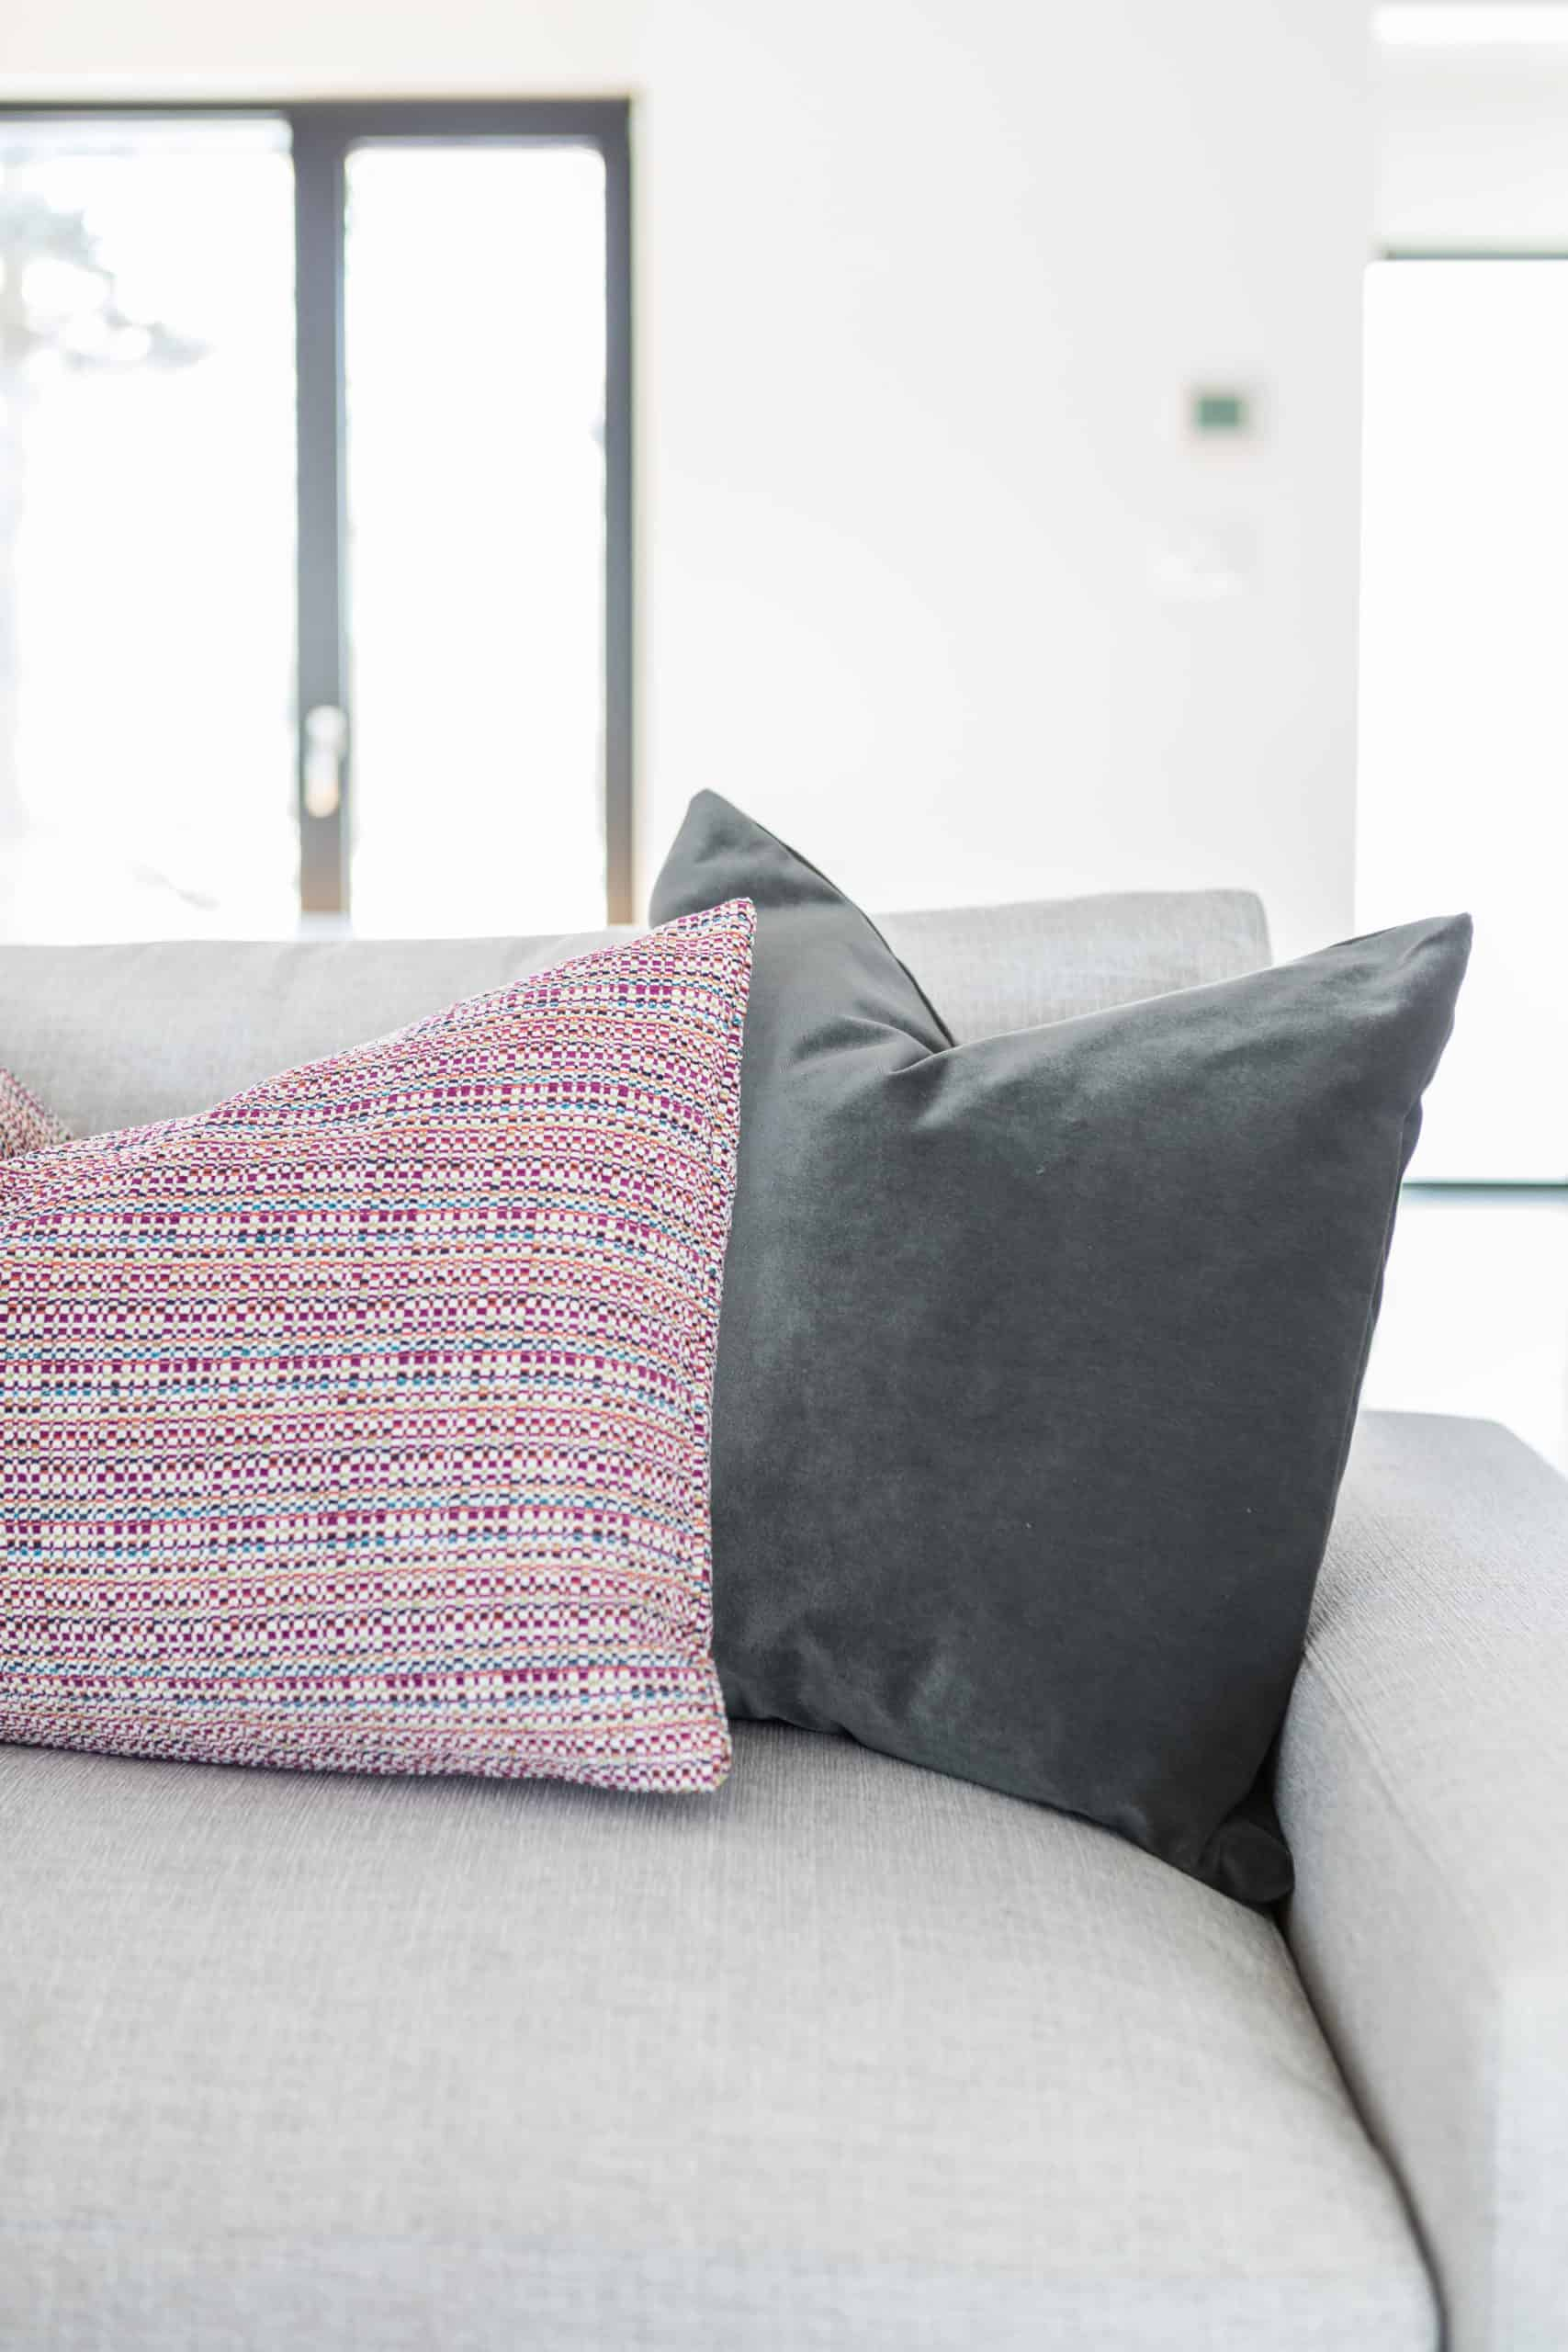 Pink and black pillow on a white couch